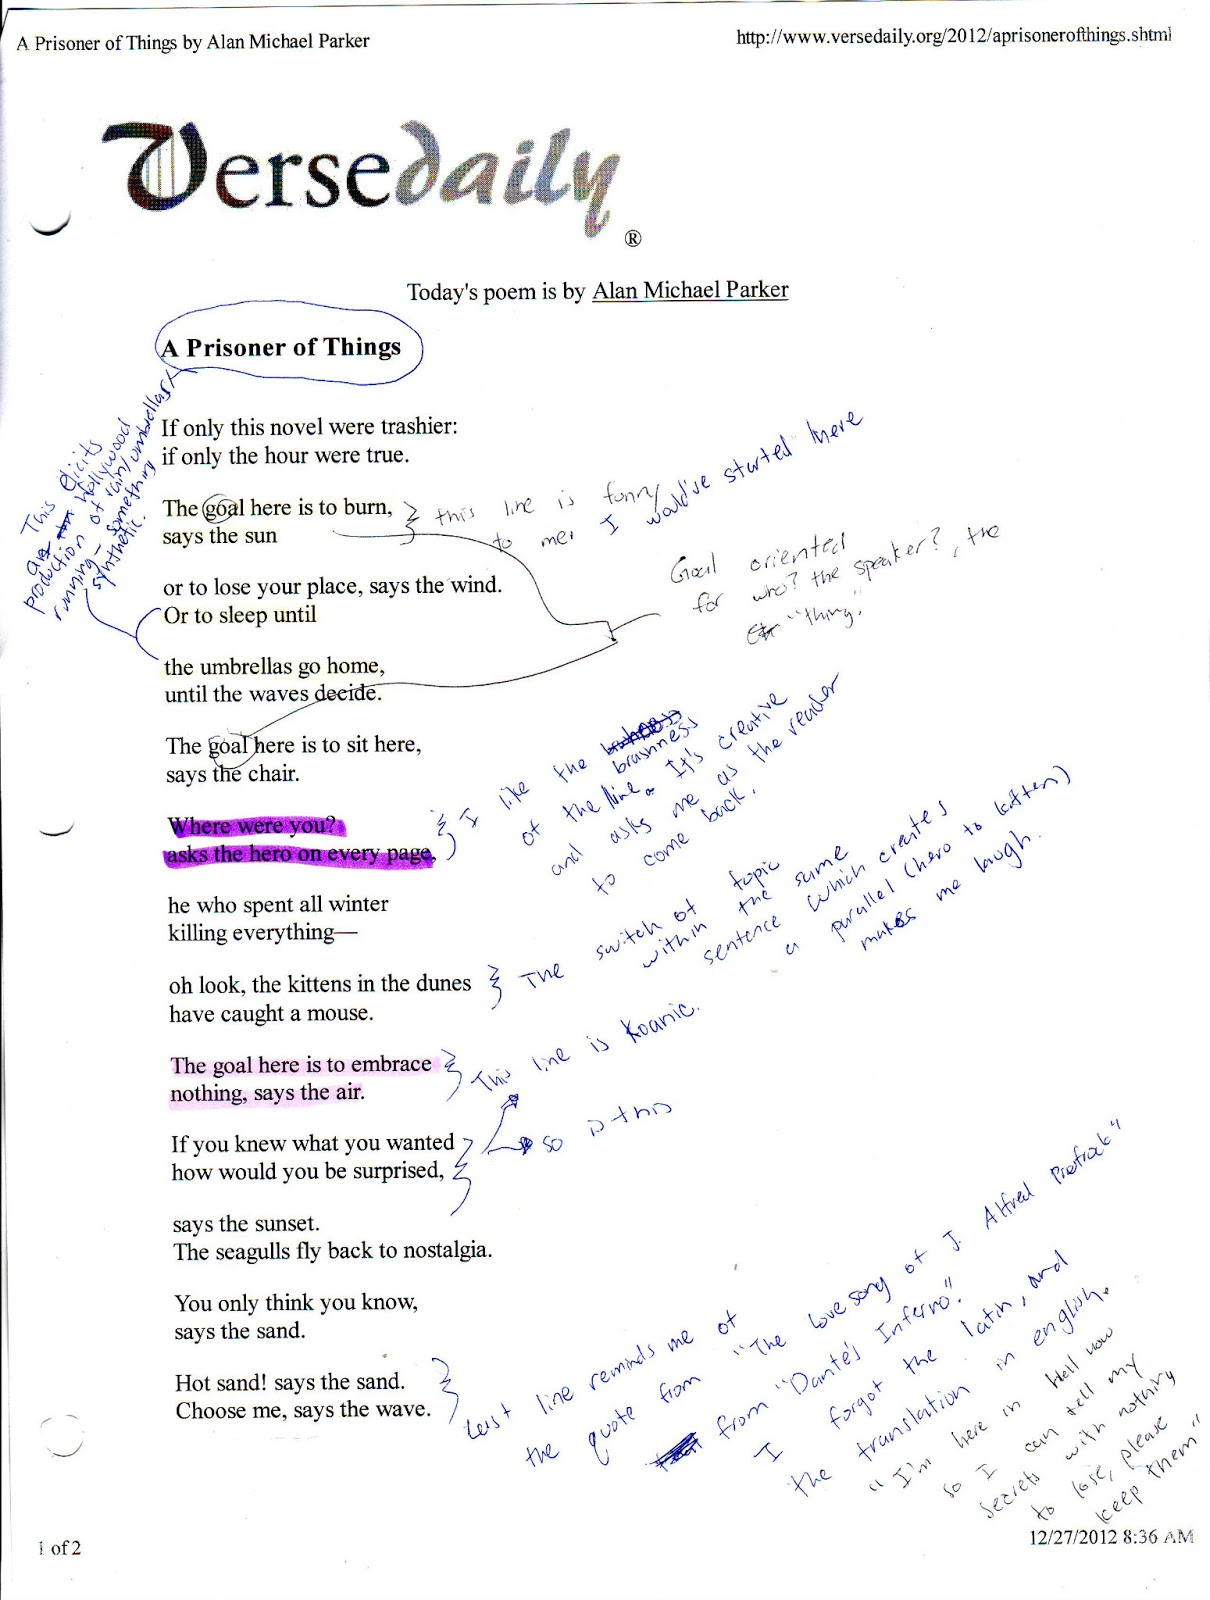 an analysis of the poem if by alan ware Browse through alan seeger's poems and quotes 75 poems of alan seeger phenomenal woman, still i rise, the road not taken, if you forget me, dreams alan seeger was an american poet who fought and died in world war i serving in the french foreign l.